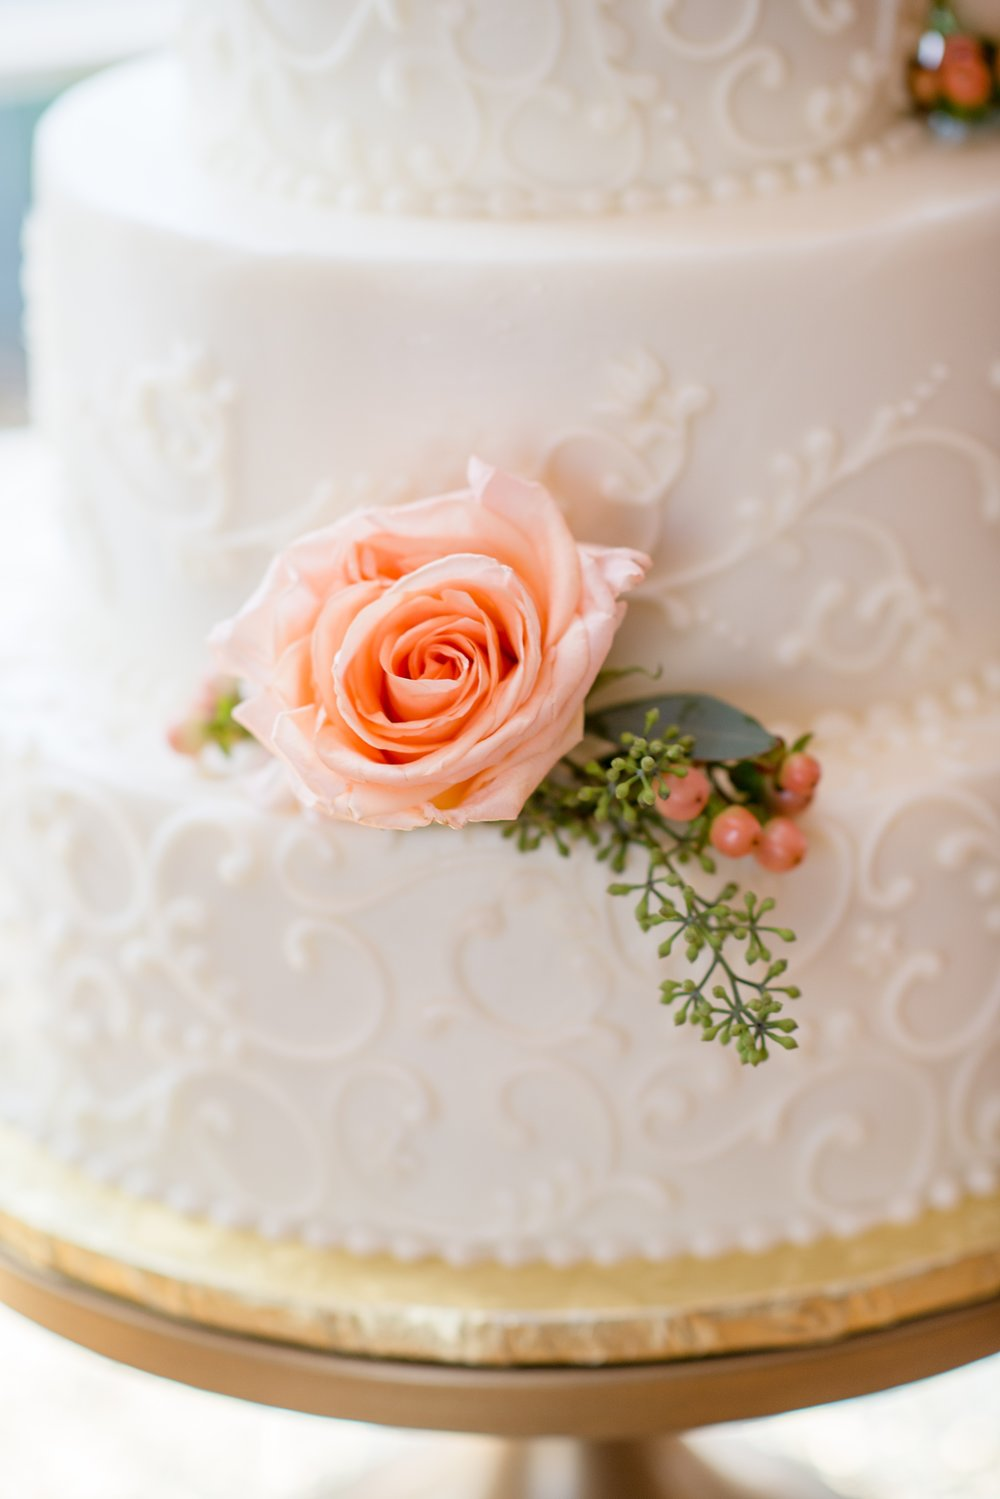 Hillcrest Country Club Wedding  | Indiana Wedding Venues | White and coral wedding cake with roses